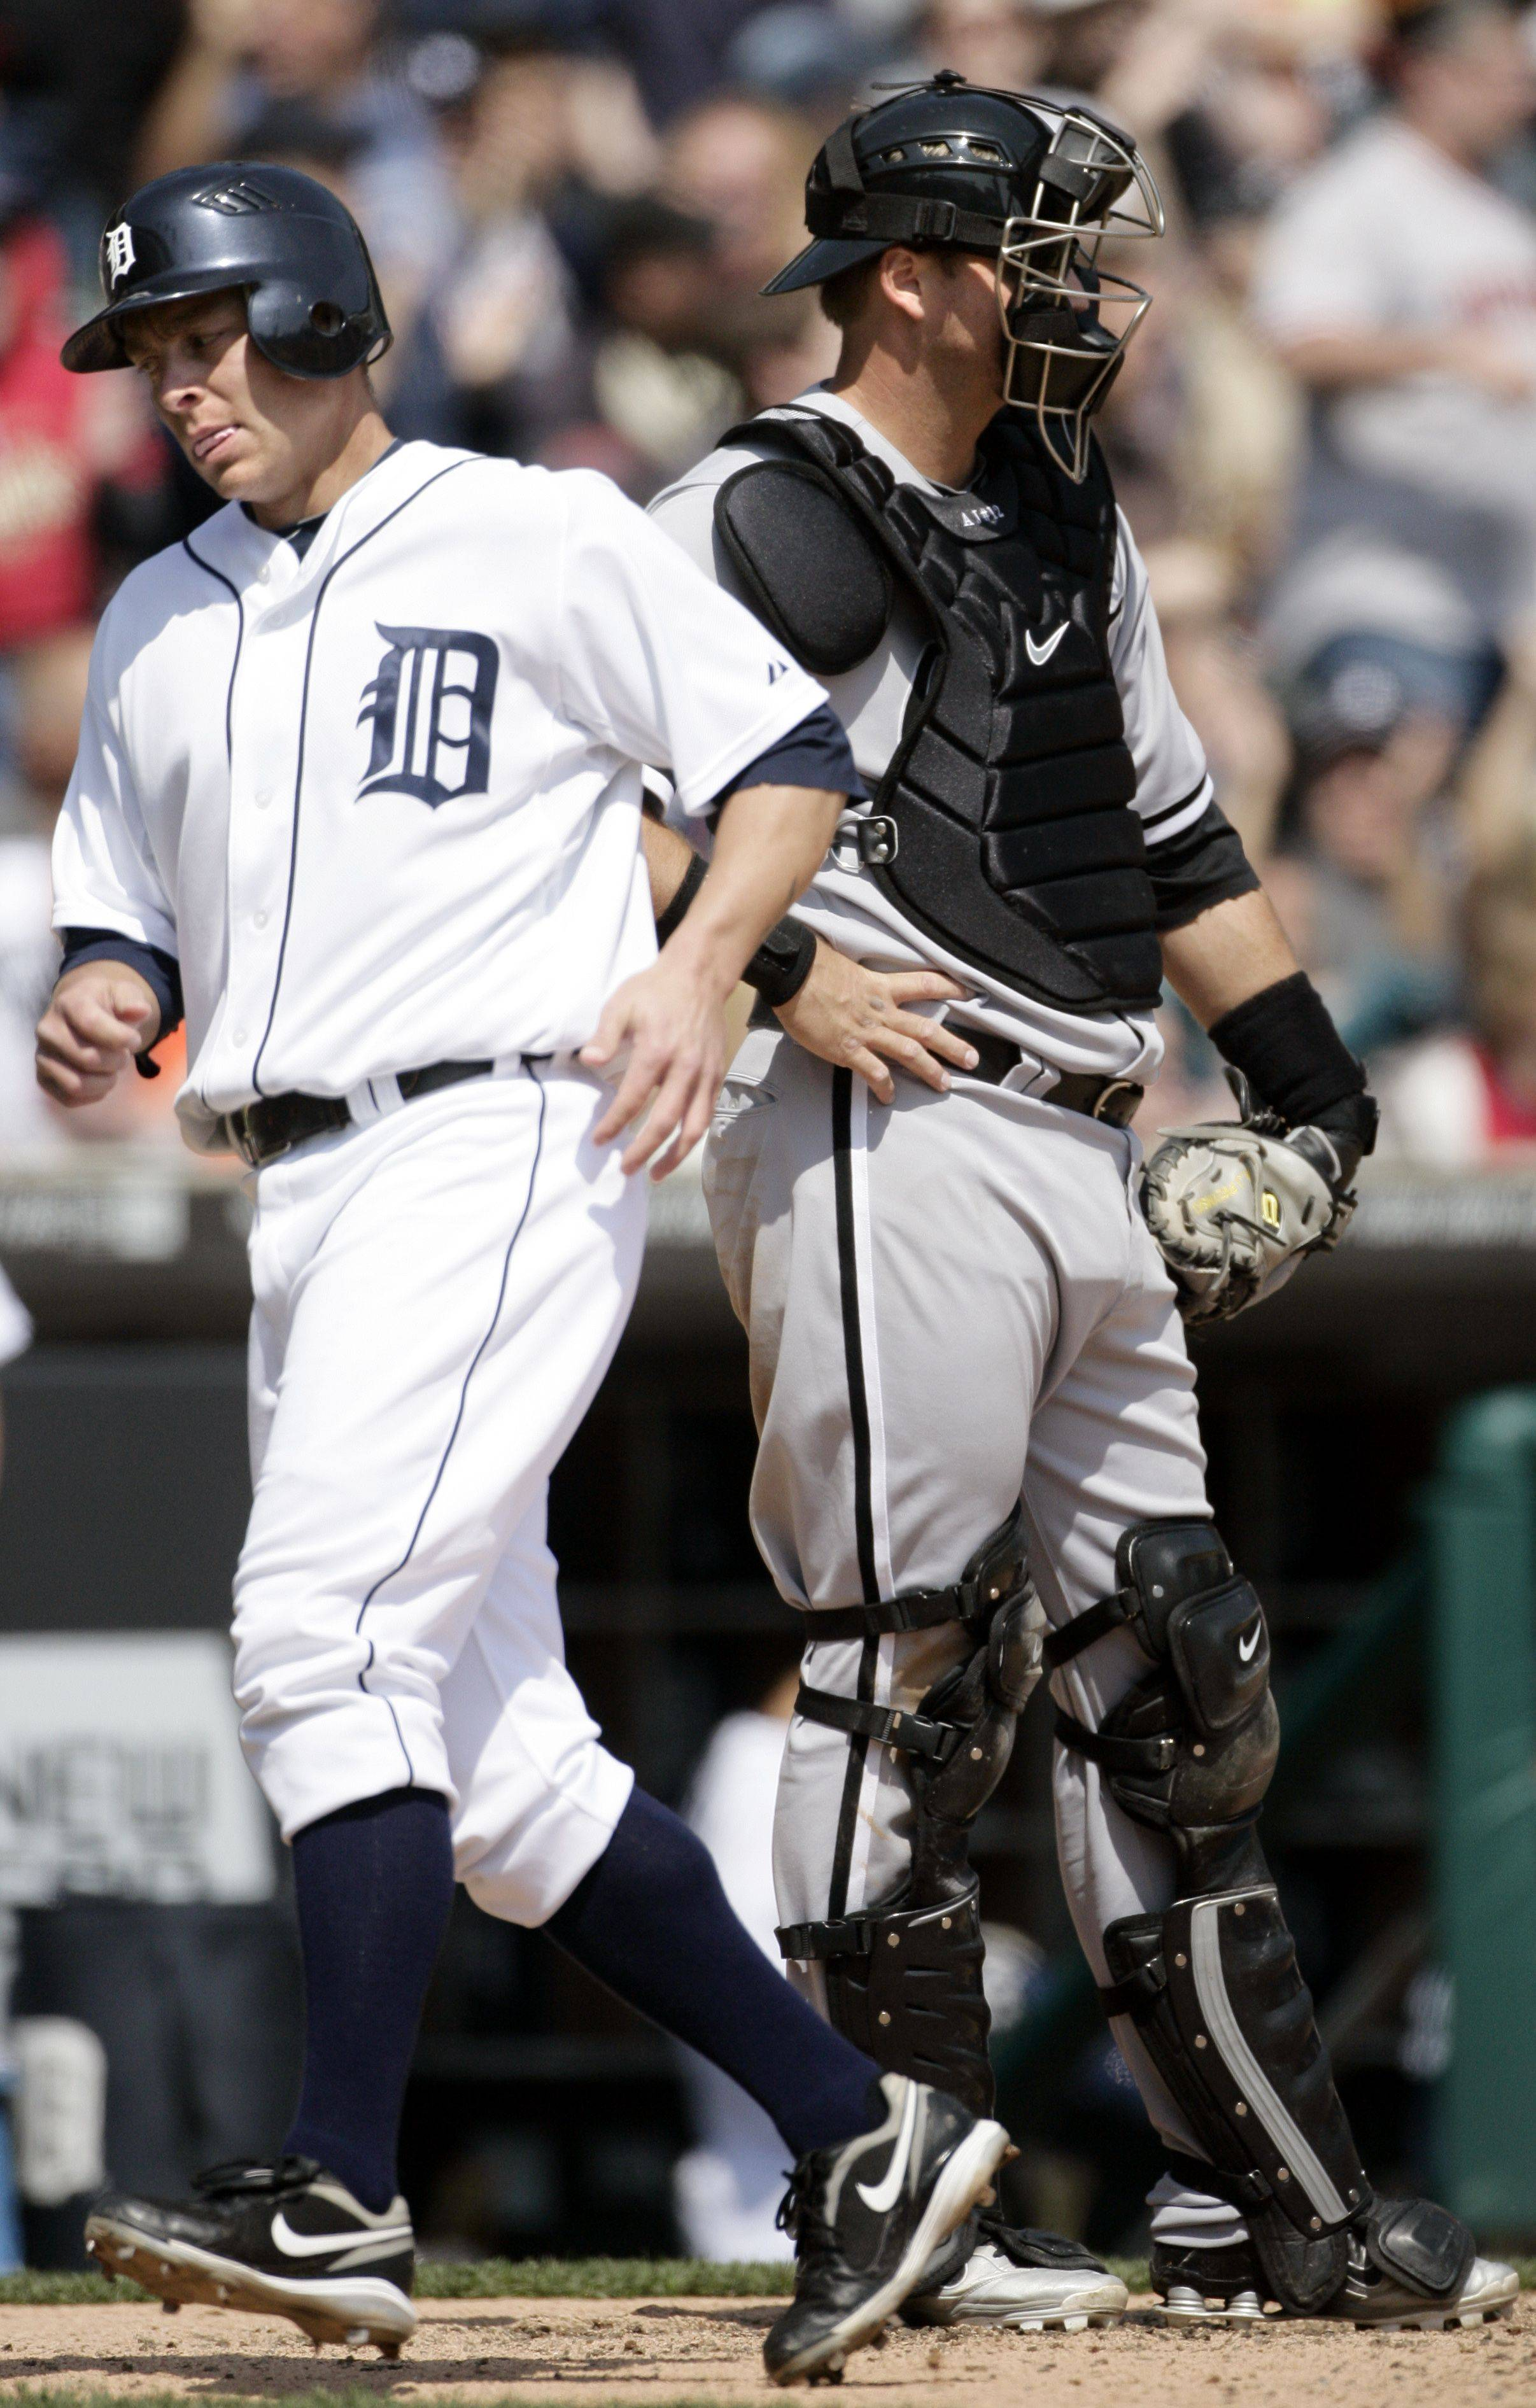 Detroit Tigers' Brandon Inge, left, scores from second base past Chicago White Sox catcher A.J. Pierzynski on a double by Austin Jackson in the sixth inning Sunday in Detroit.